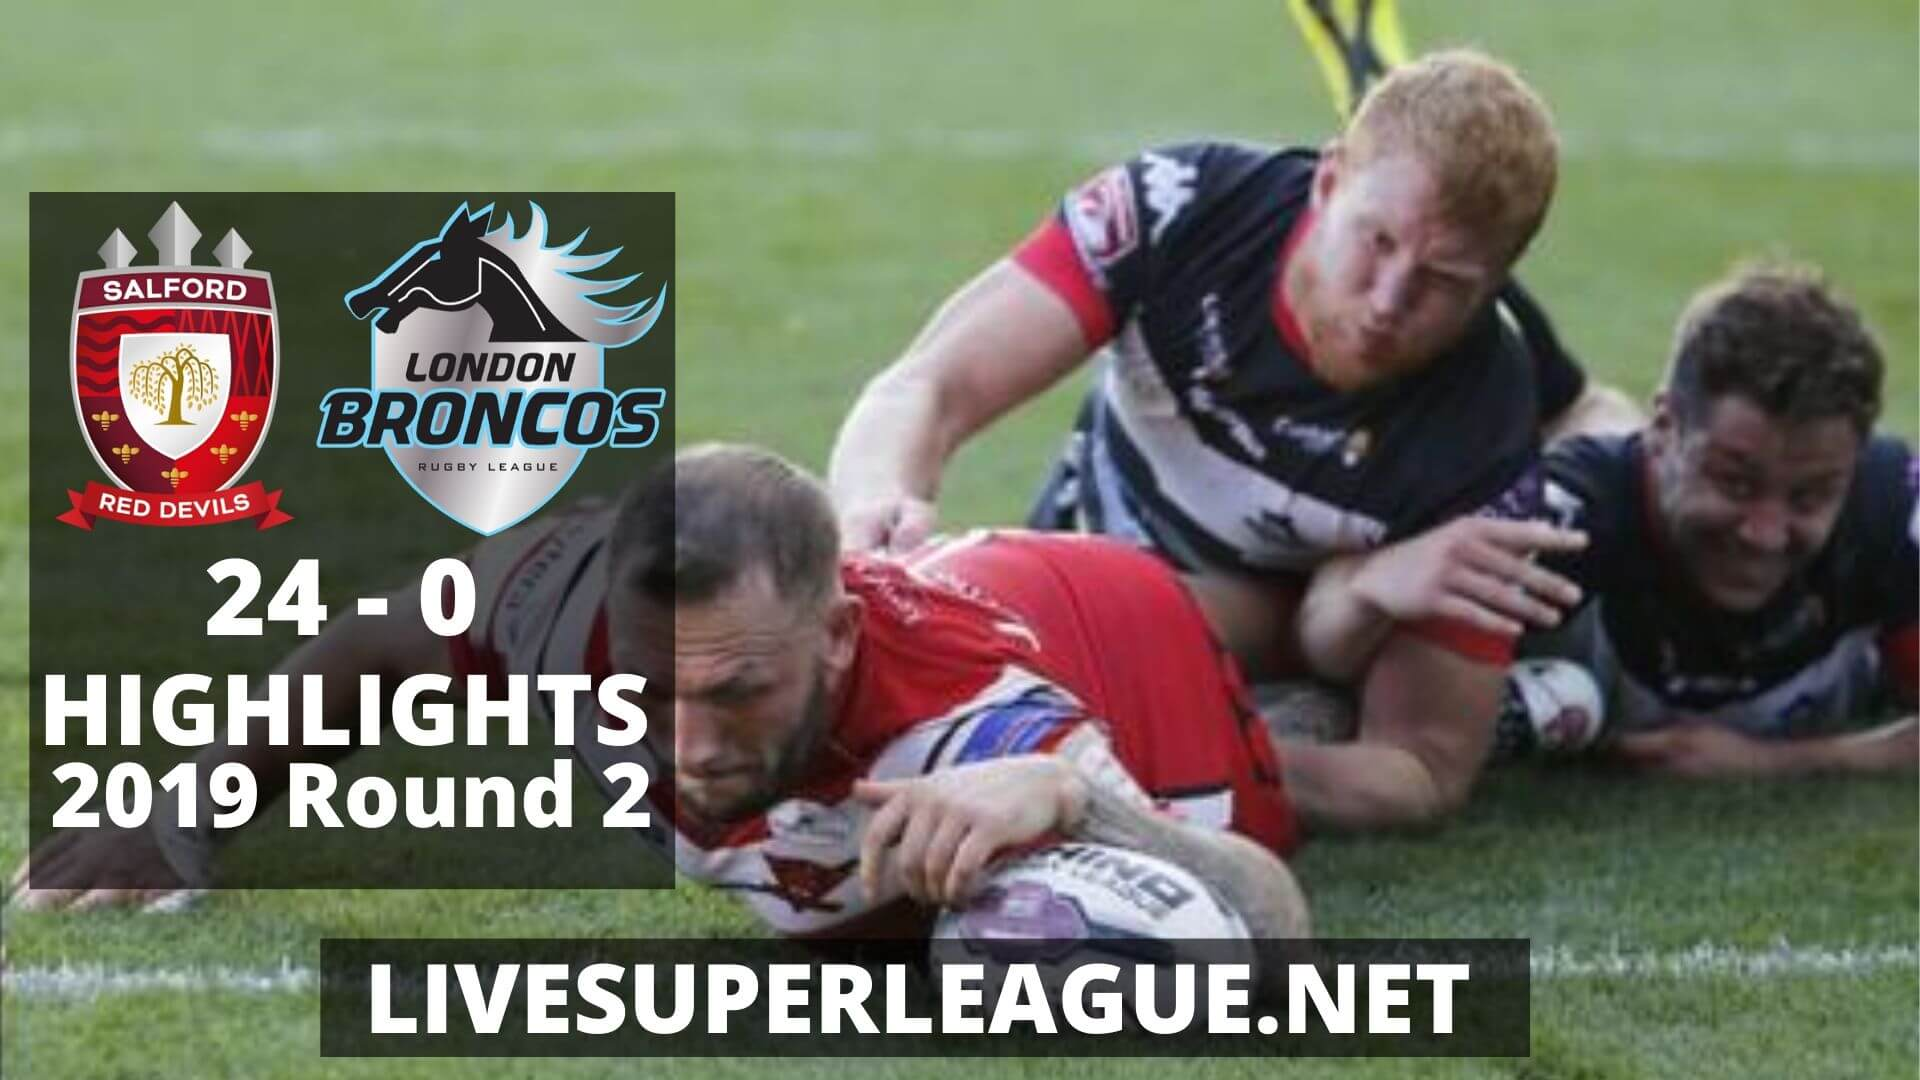 Salford Red Devils Vs London Broncos Highlights 2019 Round 2